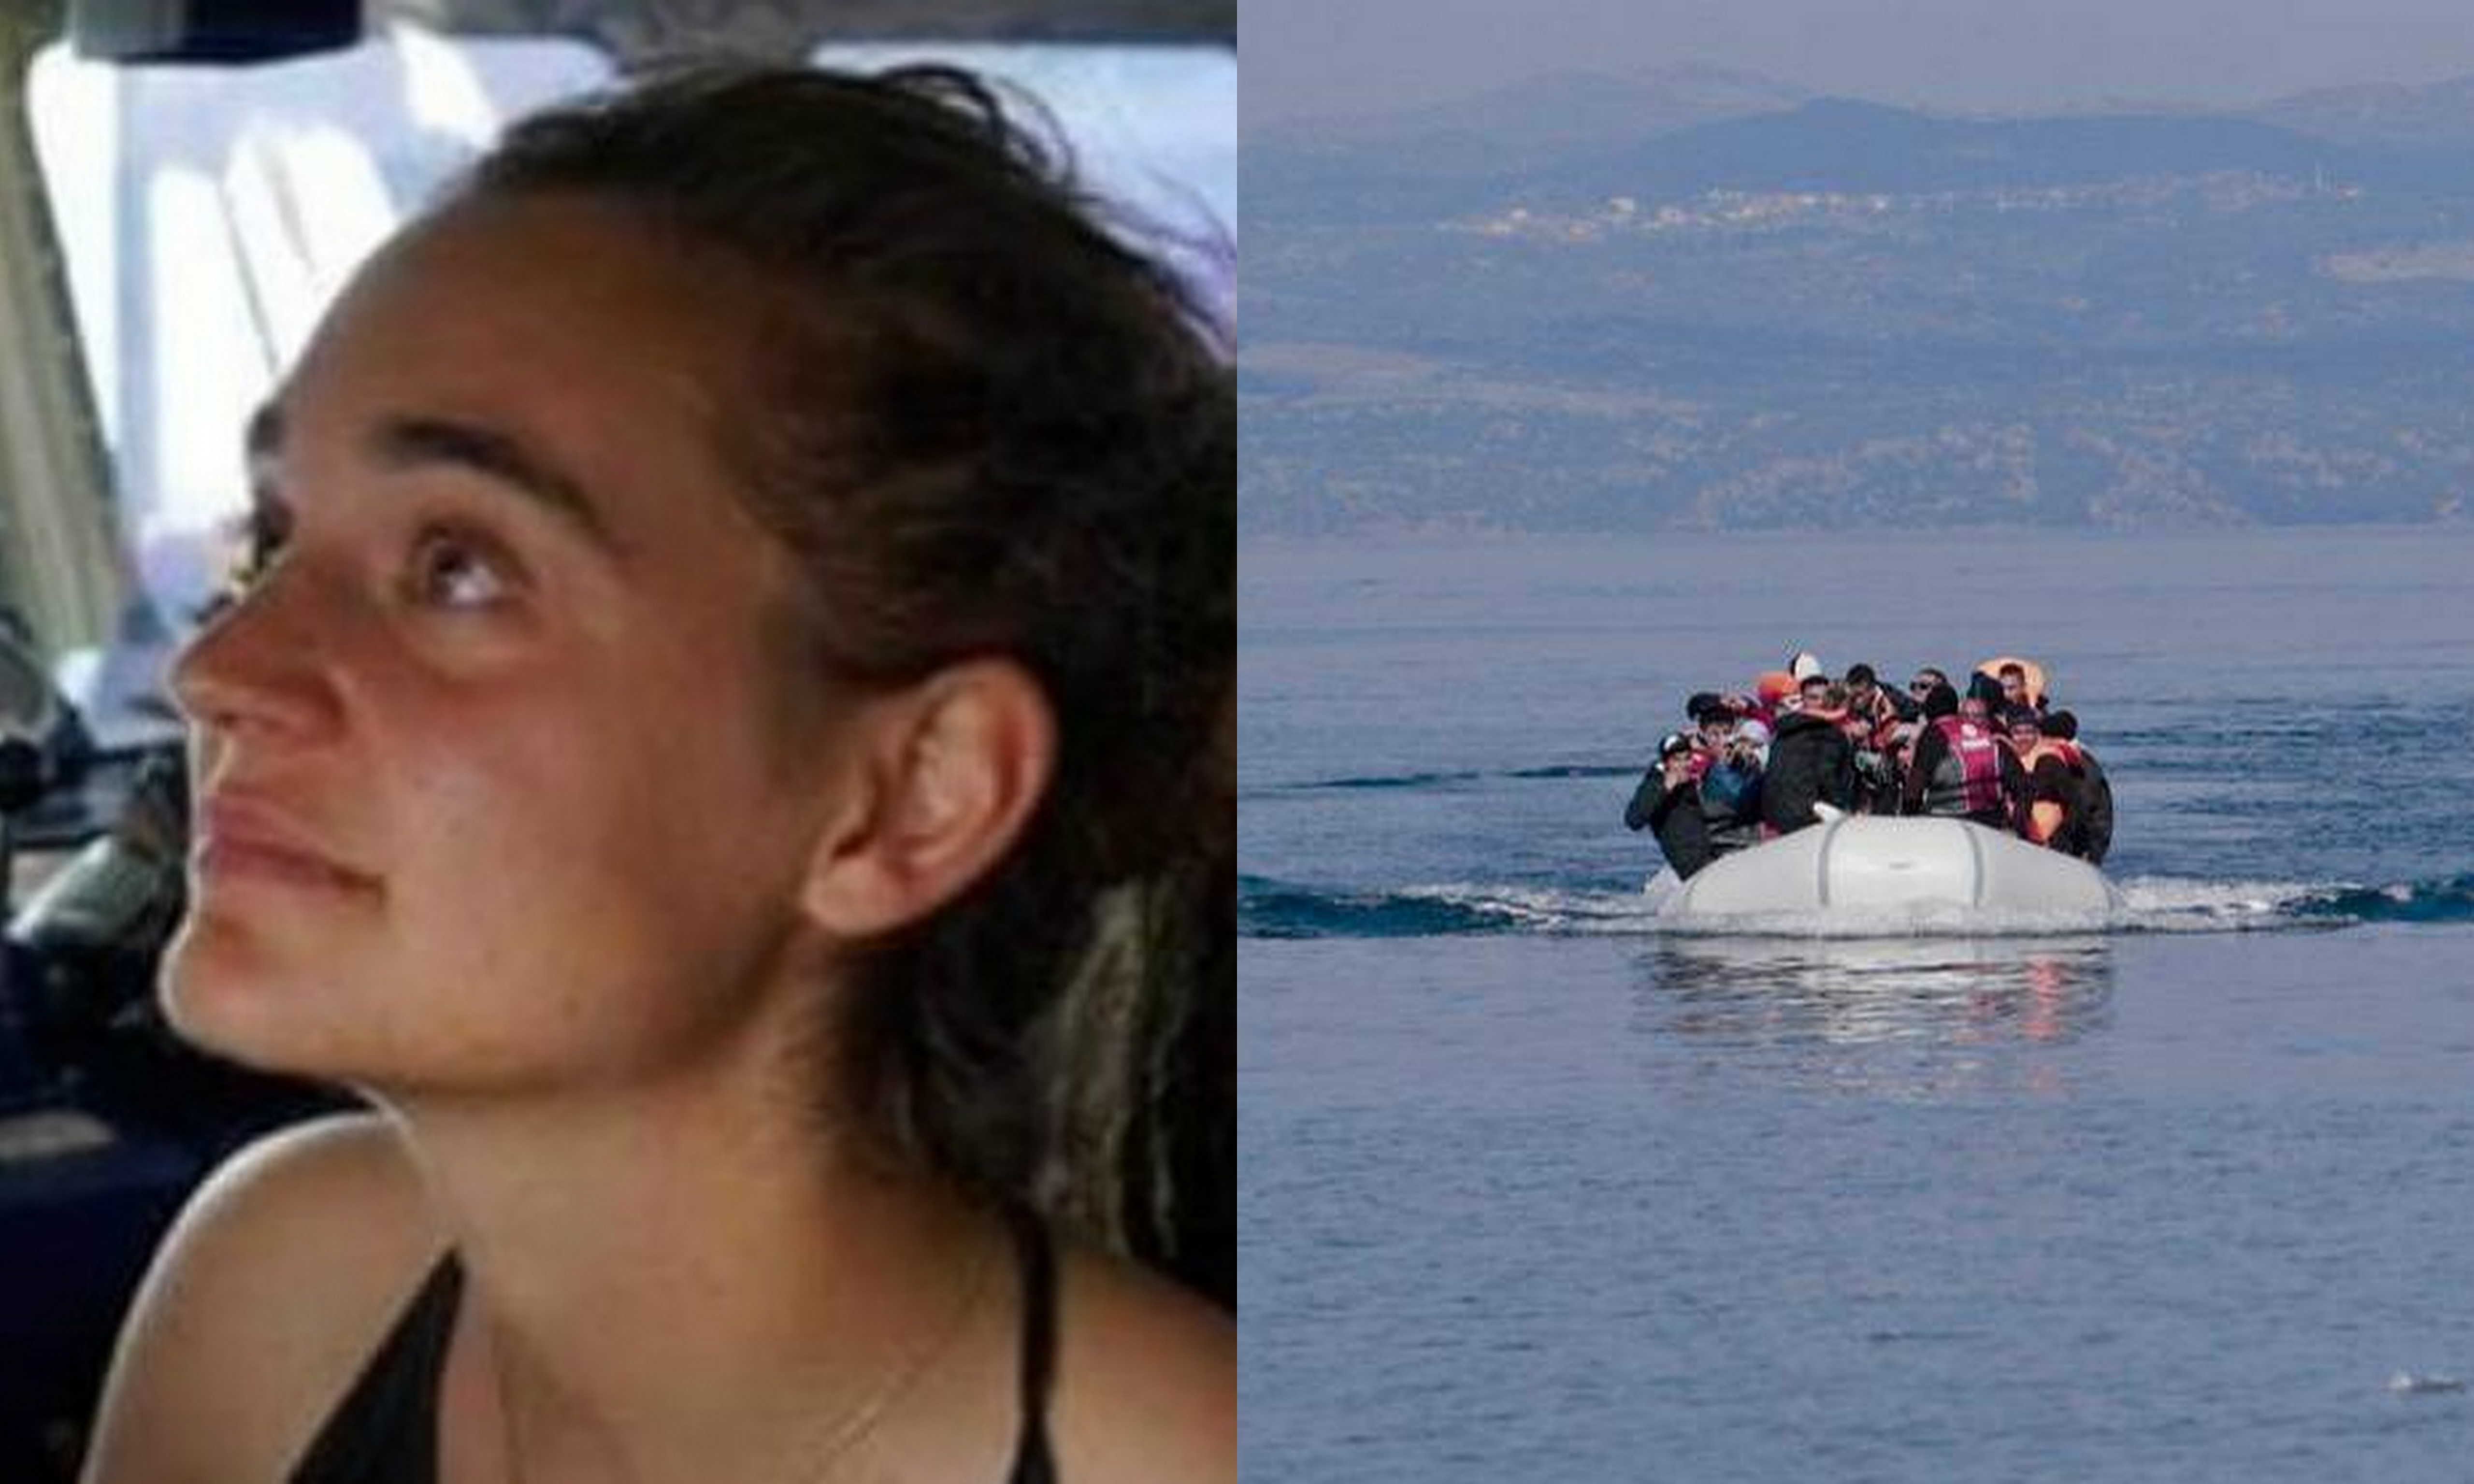 Baseless Smuggling Charges Not Only in Italy, but are a Regular Occurrence in Lesvos